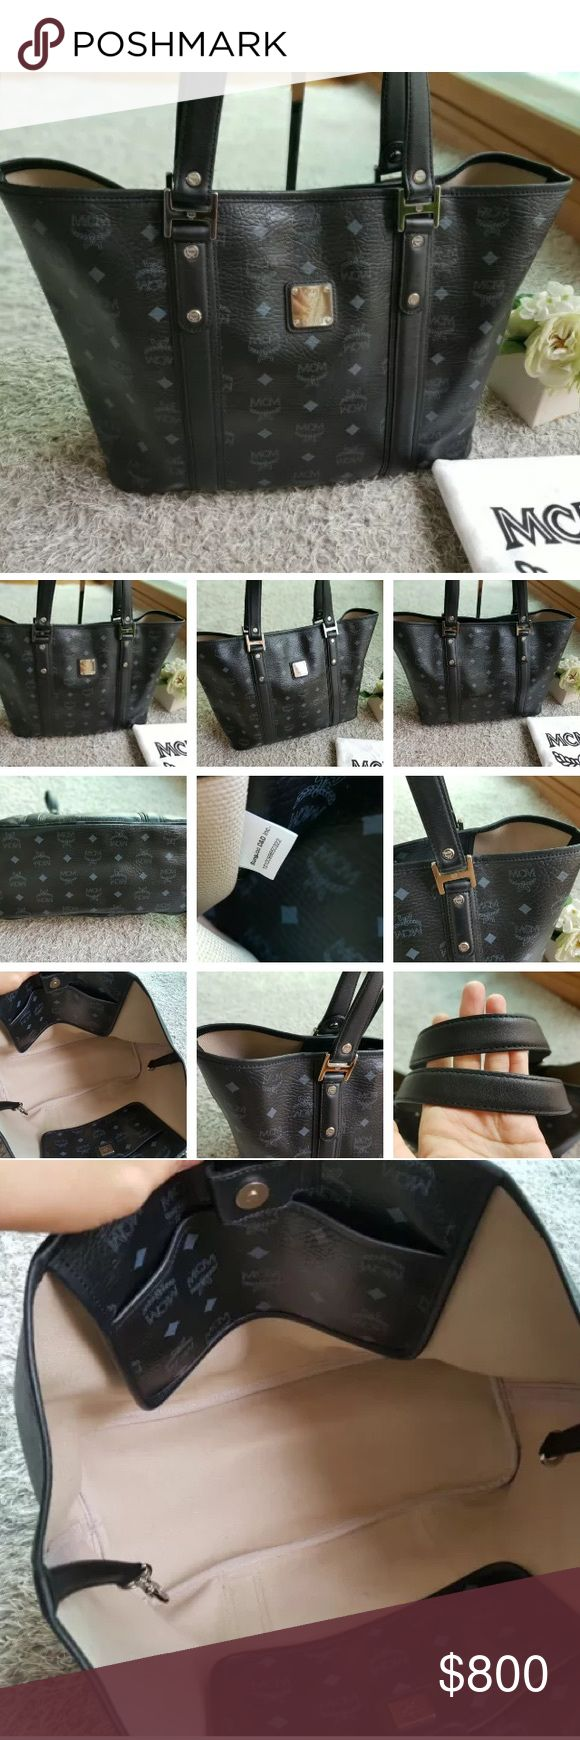 % Authentic MCM VISETOS Black Tote NOT FOR SALE OR TRADE. Waiting for this beautiful bag to arrive. I'm looking for a matching wallet at reasonable price. Tag me if you have or have seen one please. Thanks. MCM Bags Totes